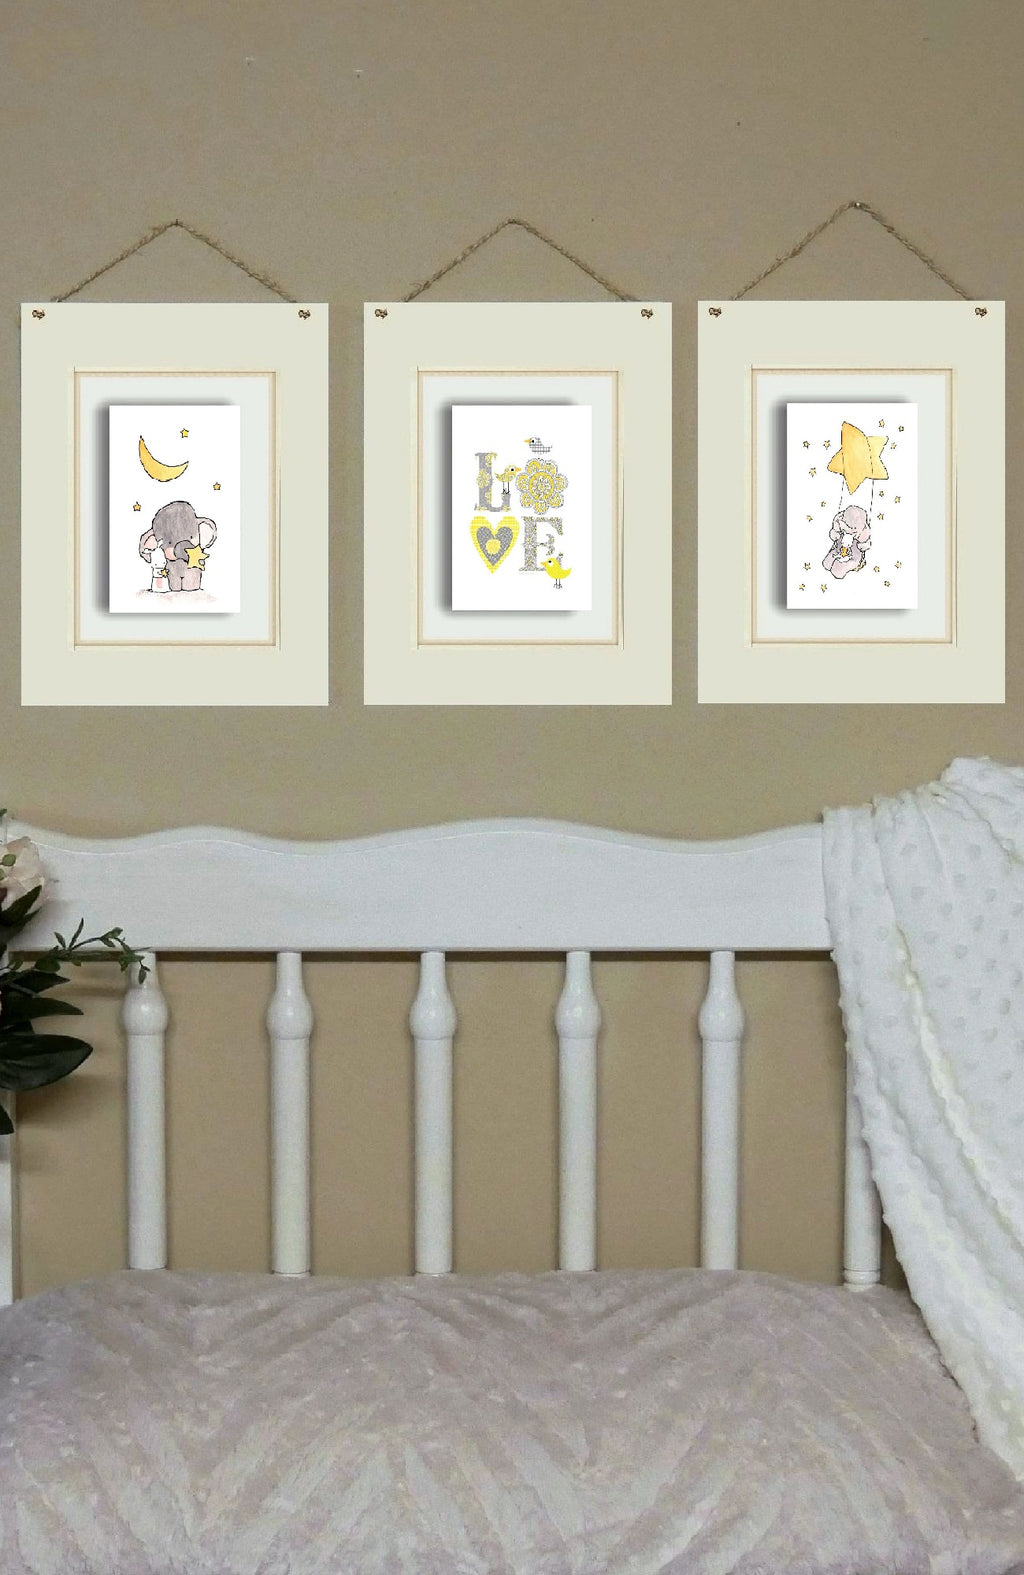 Elephant-Nursery-Wall-Prints-Nchanted-Gifts